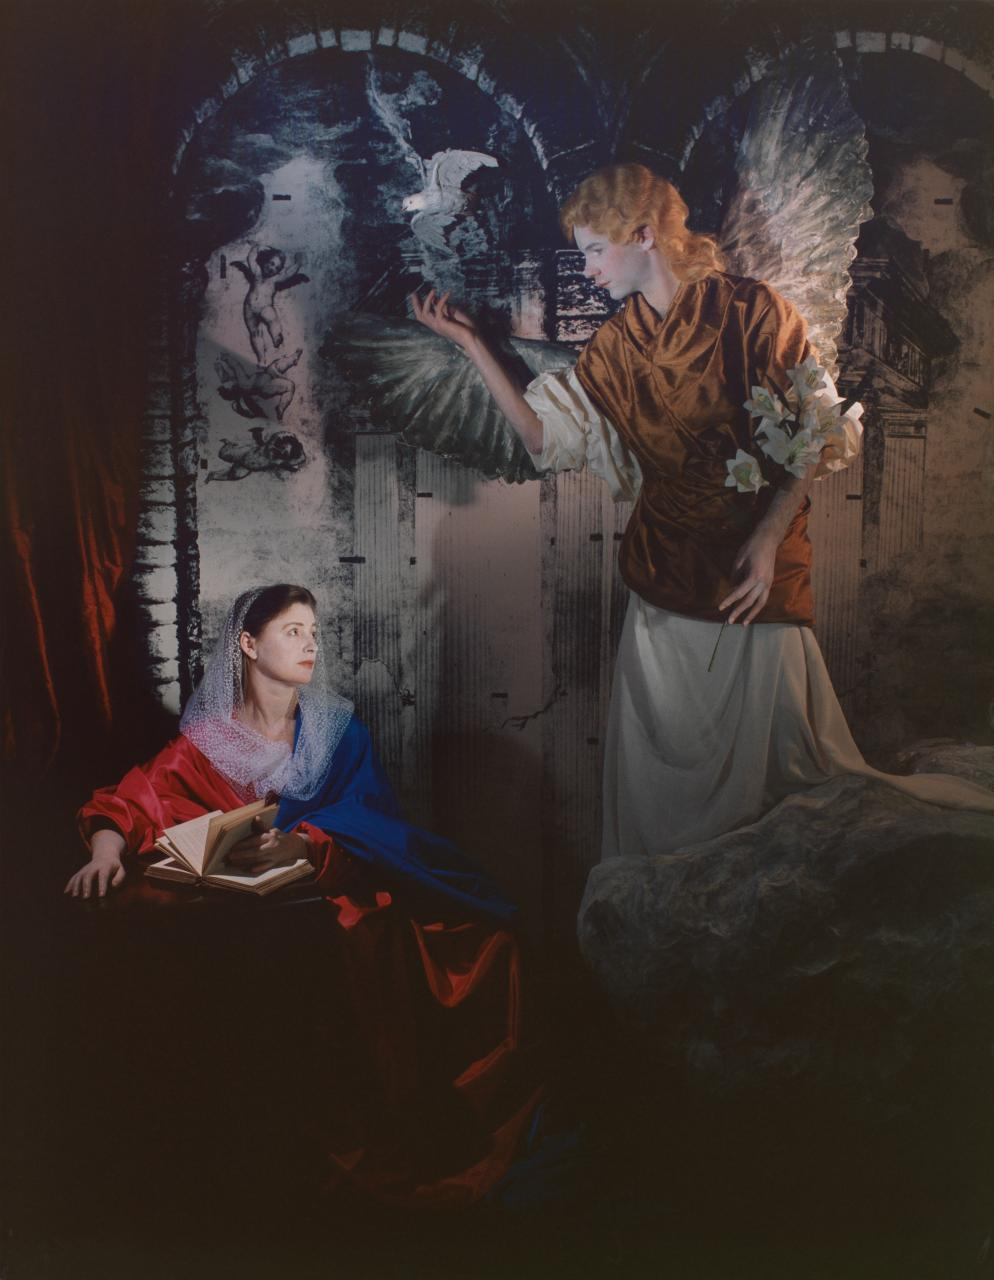 ROSE FARRELL & GEORGE PARKIN   The Annunciation  from the series  Repentance  1988 Type C Photograph 166 x 128 cm